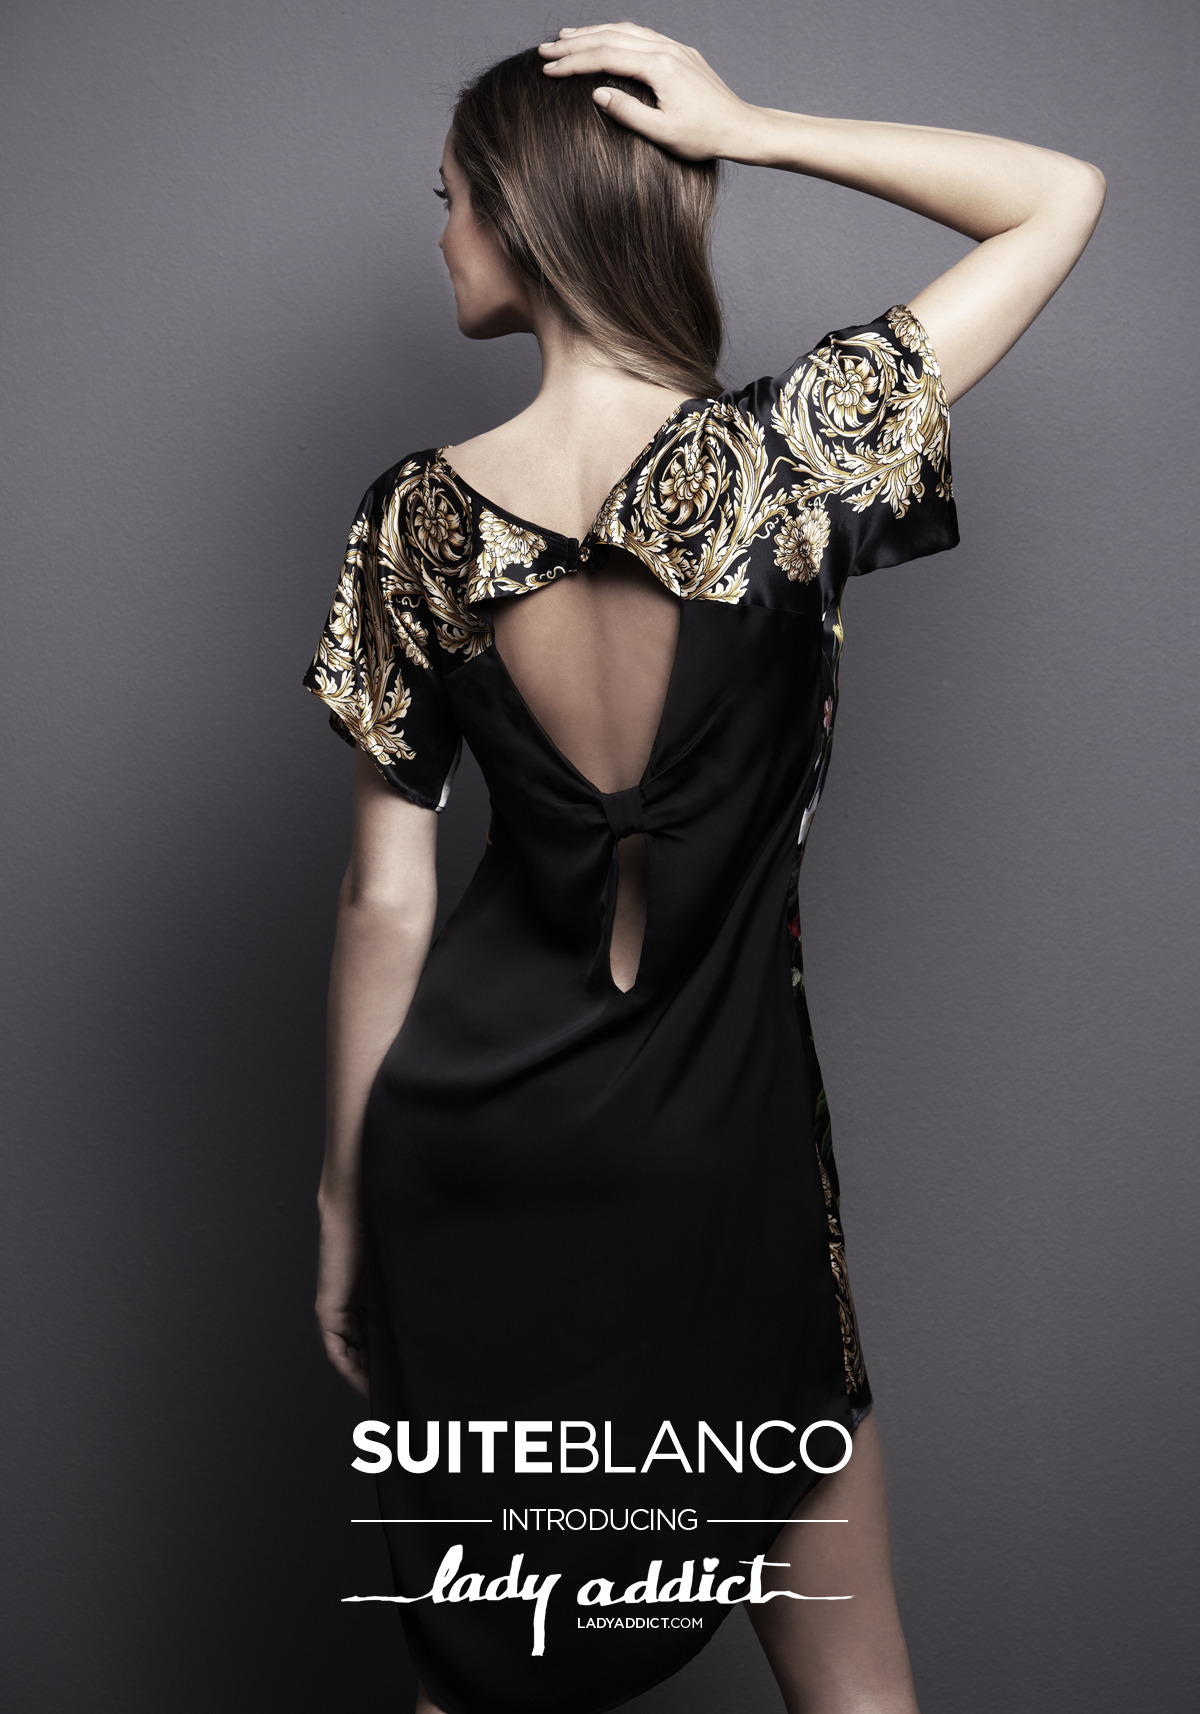 Shop Now Blanco.com: Vestido. (SUITEBLANCO introducing LADY ADDICT. New Collection Fall Winter 2012).